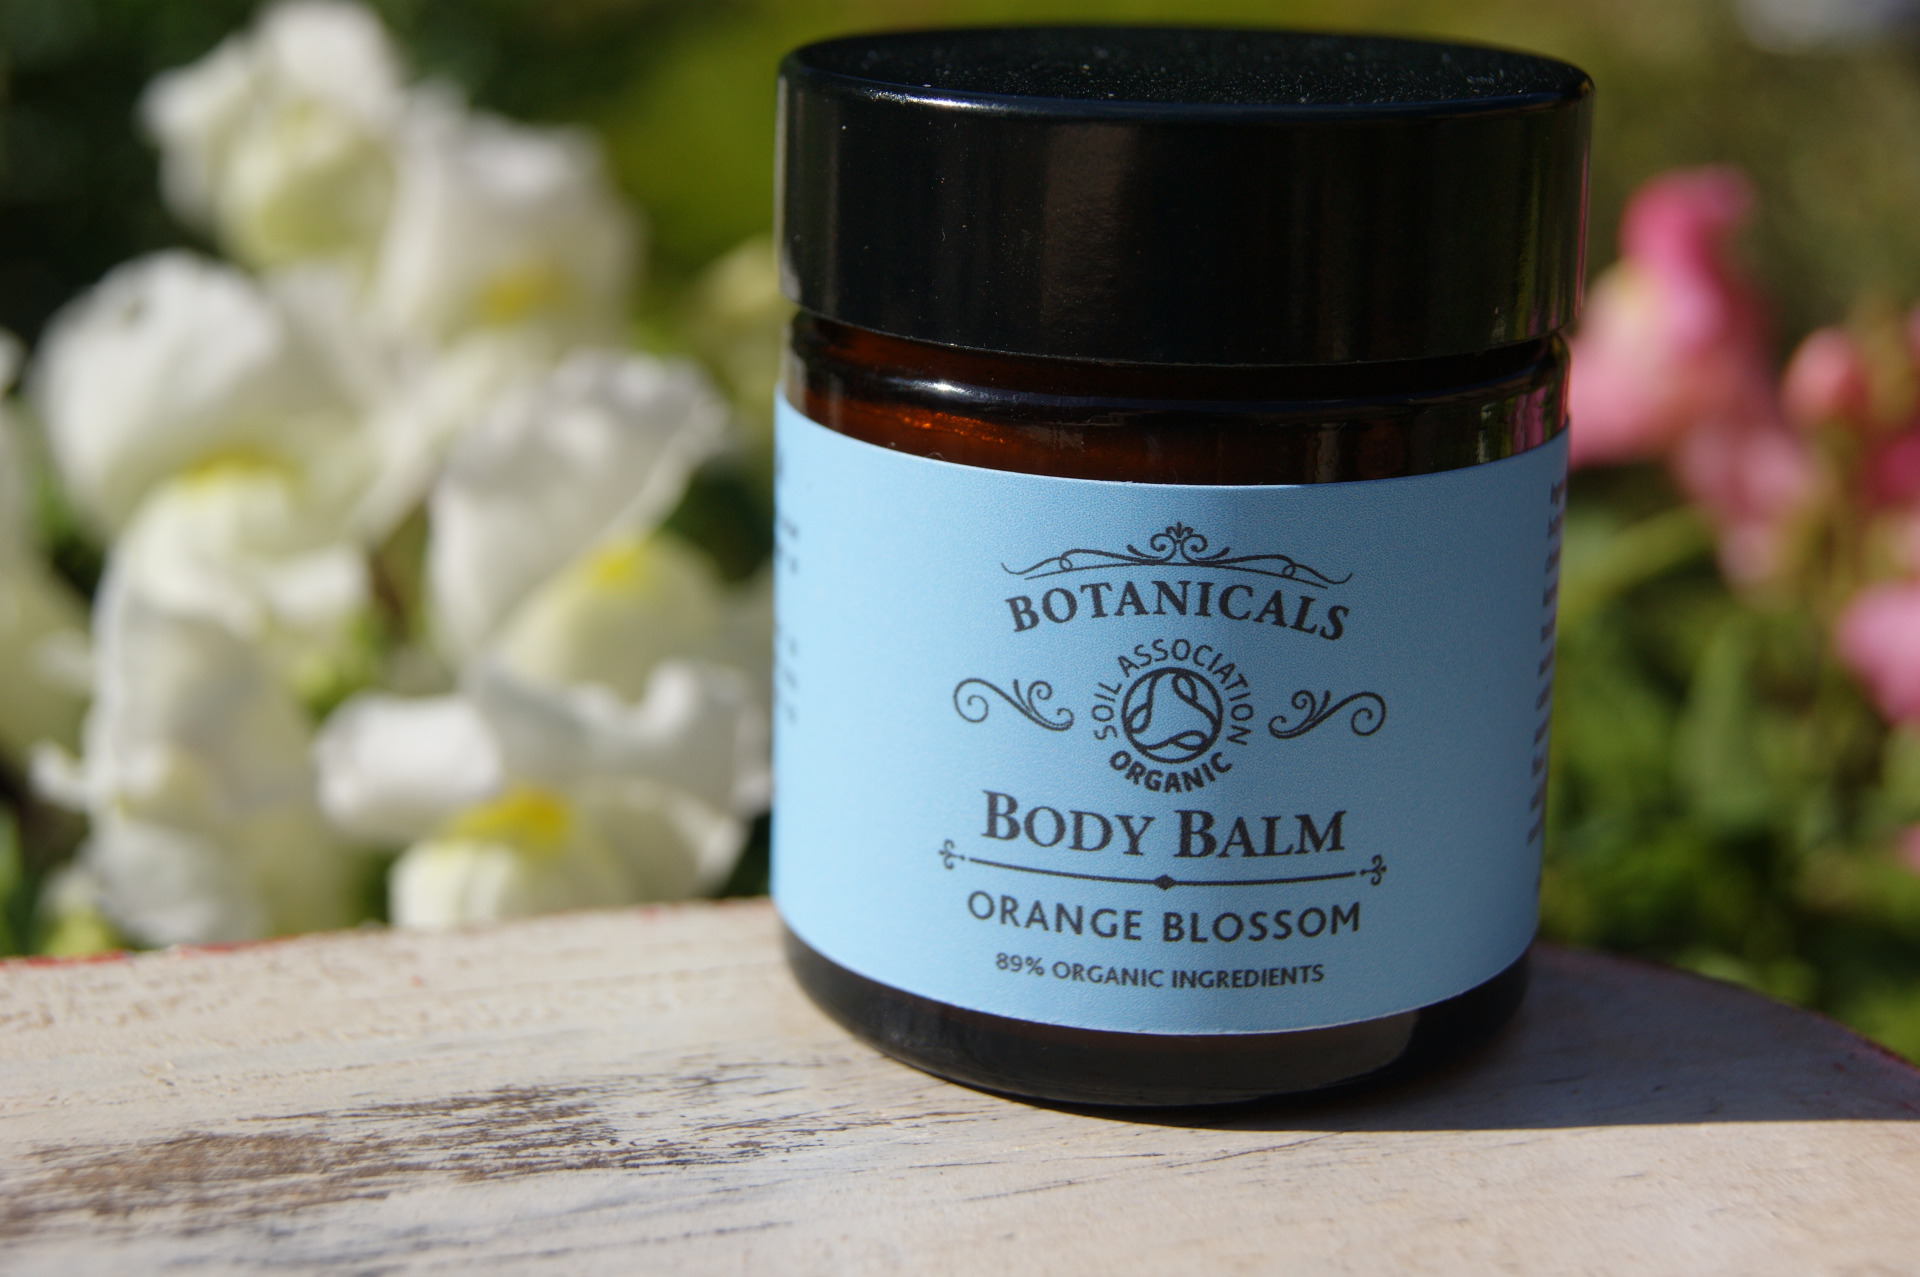 Botanicals - Body Balm